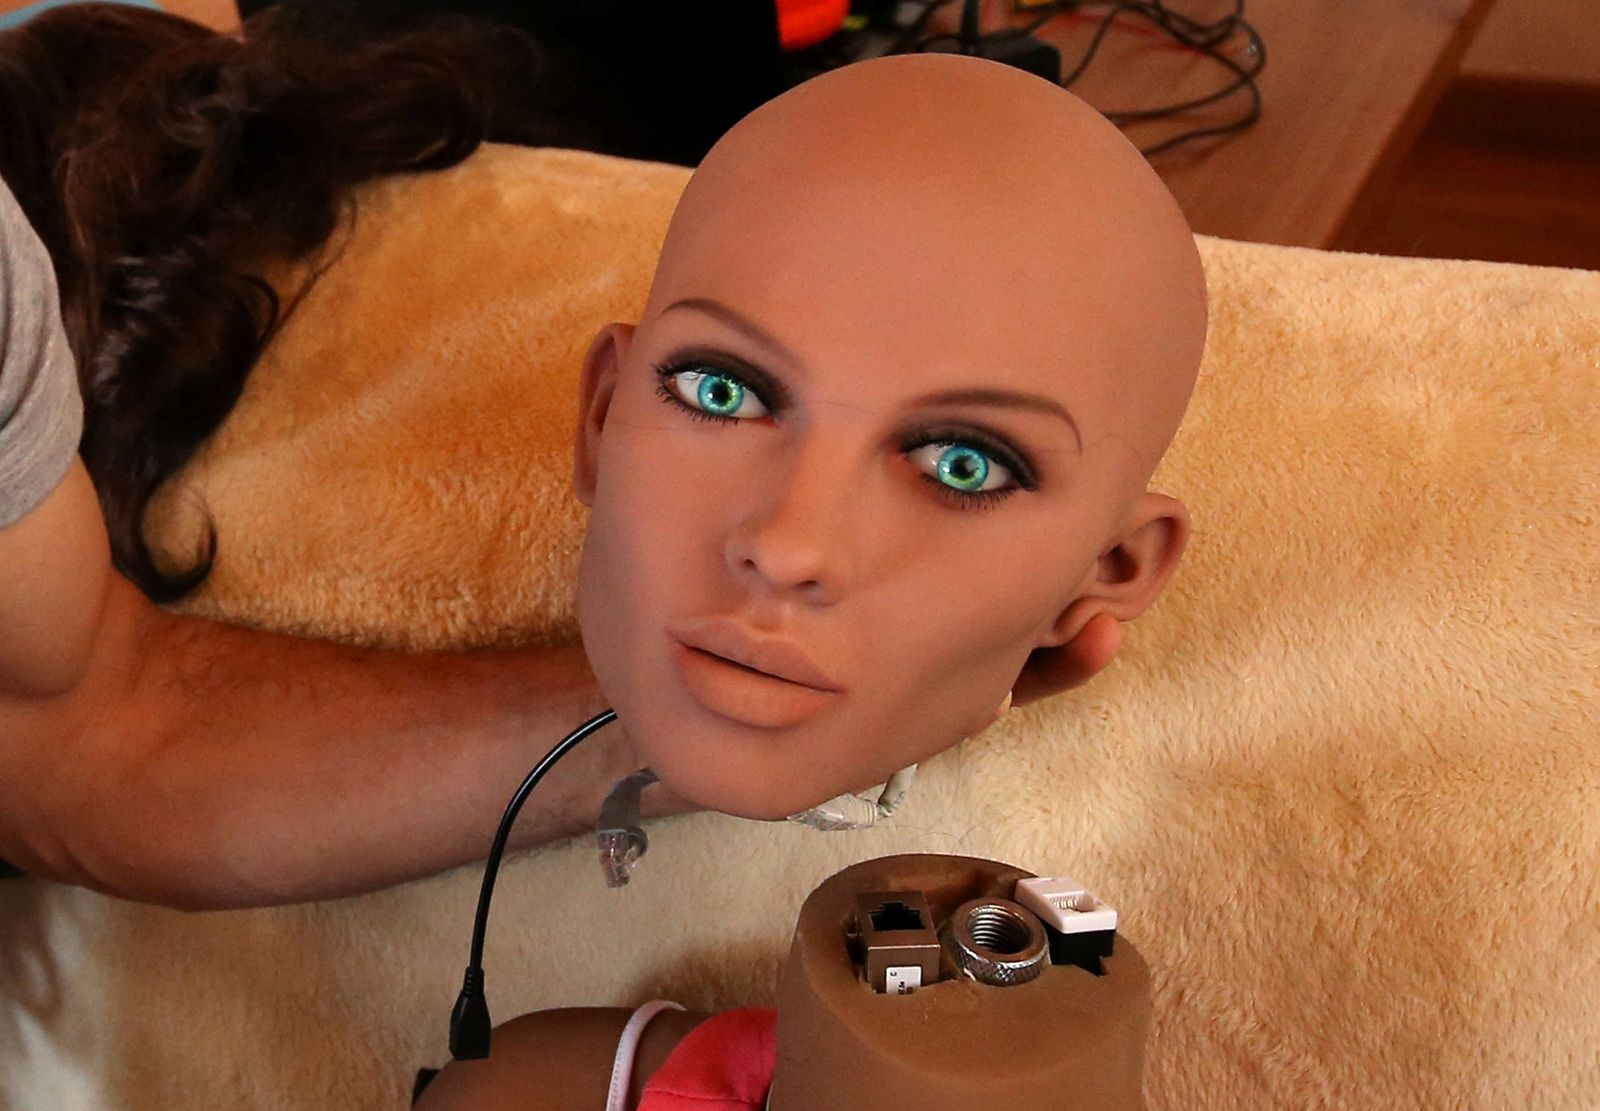 Catalan nanotechnology engineer Sergi Santos holds the head of Samantha, a sex doll packed with artificial intelligence providing her the capability to respond to different scenarios and verbal stimulus, in his house in Rubi, north of Barcelona